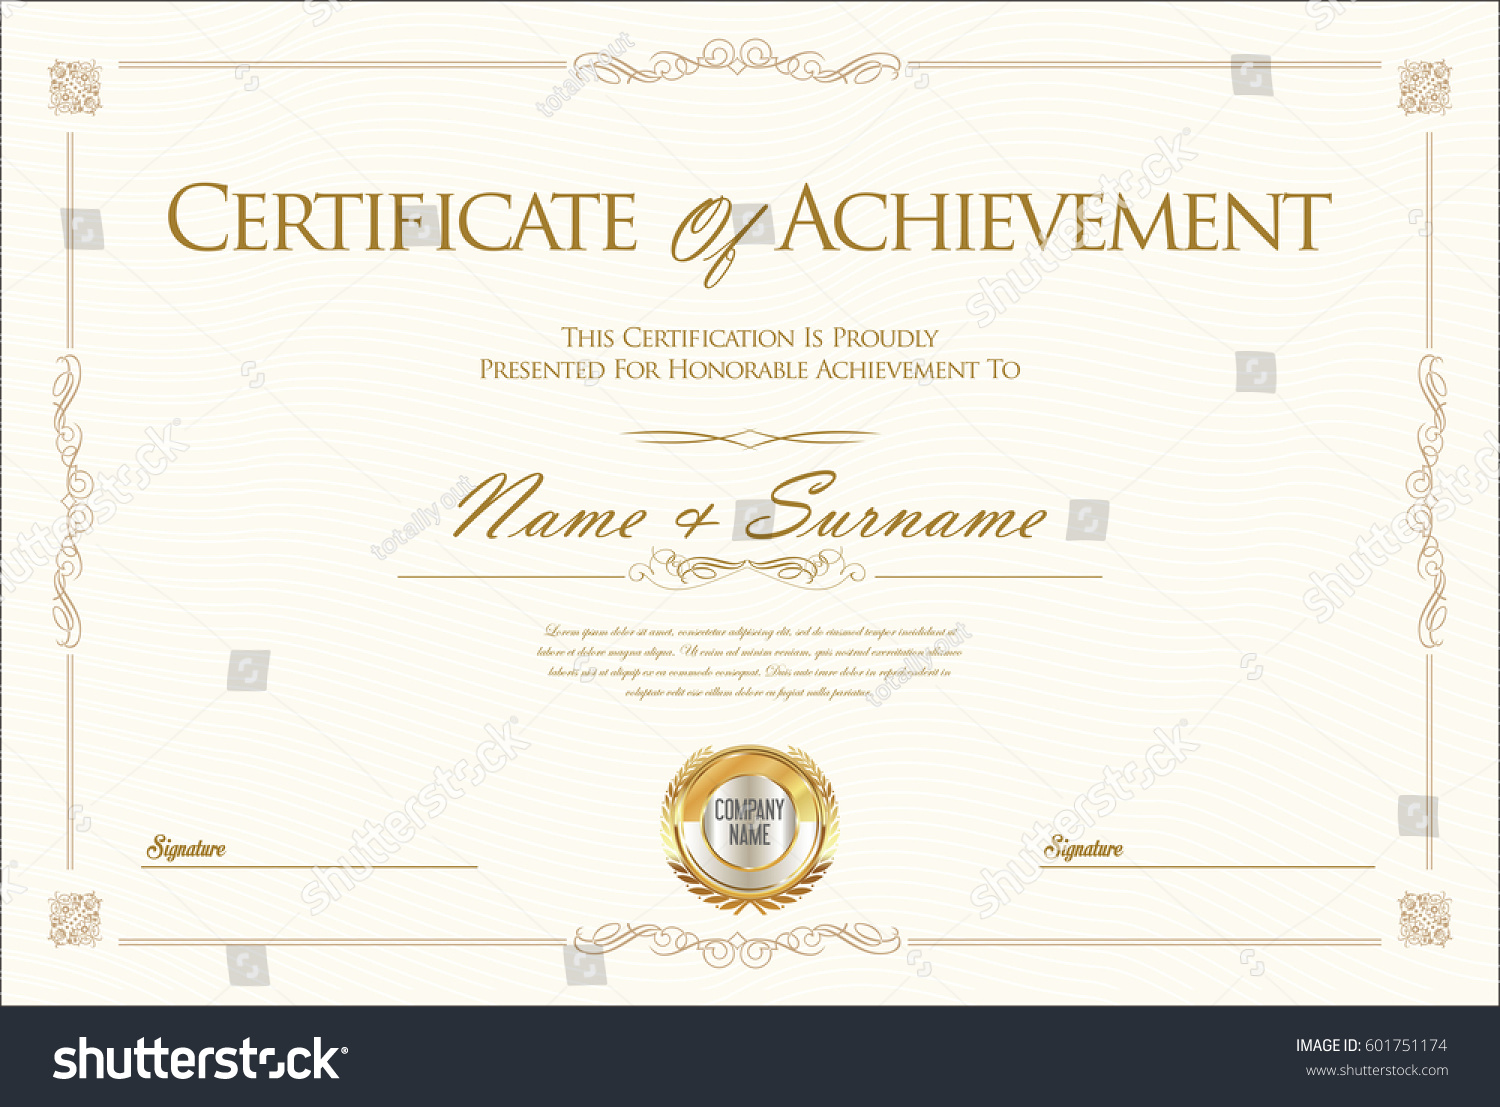 certificate achievement diploma template stock vector 601751174 shutterstock. Black Bedroom Furniture Sets. Home Design Ideas